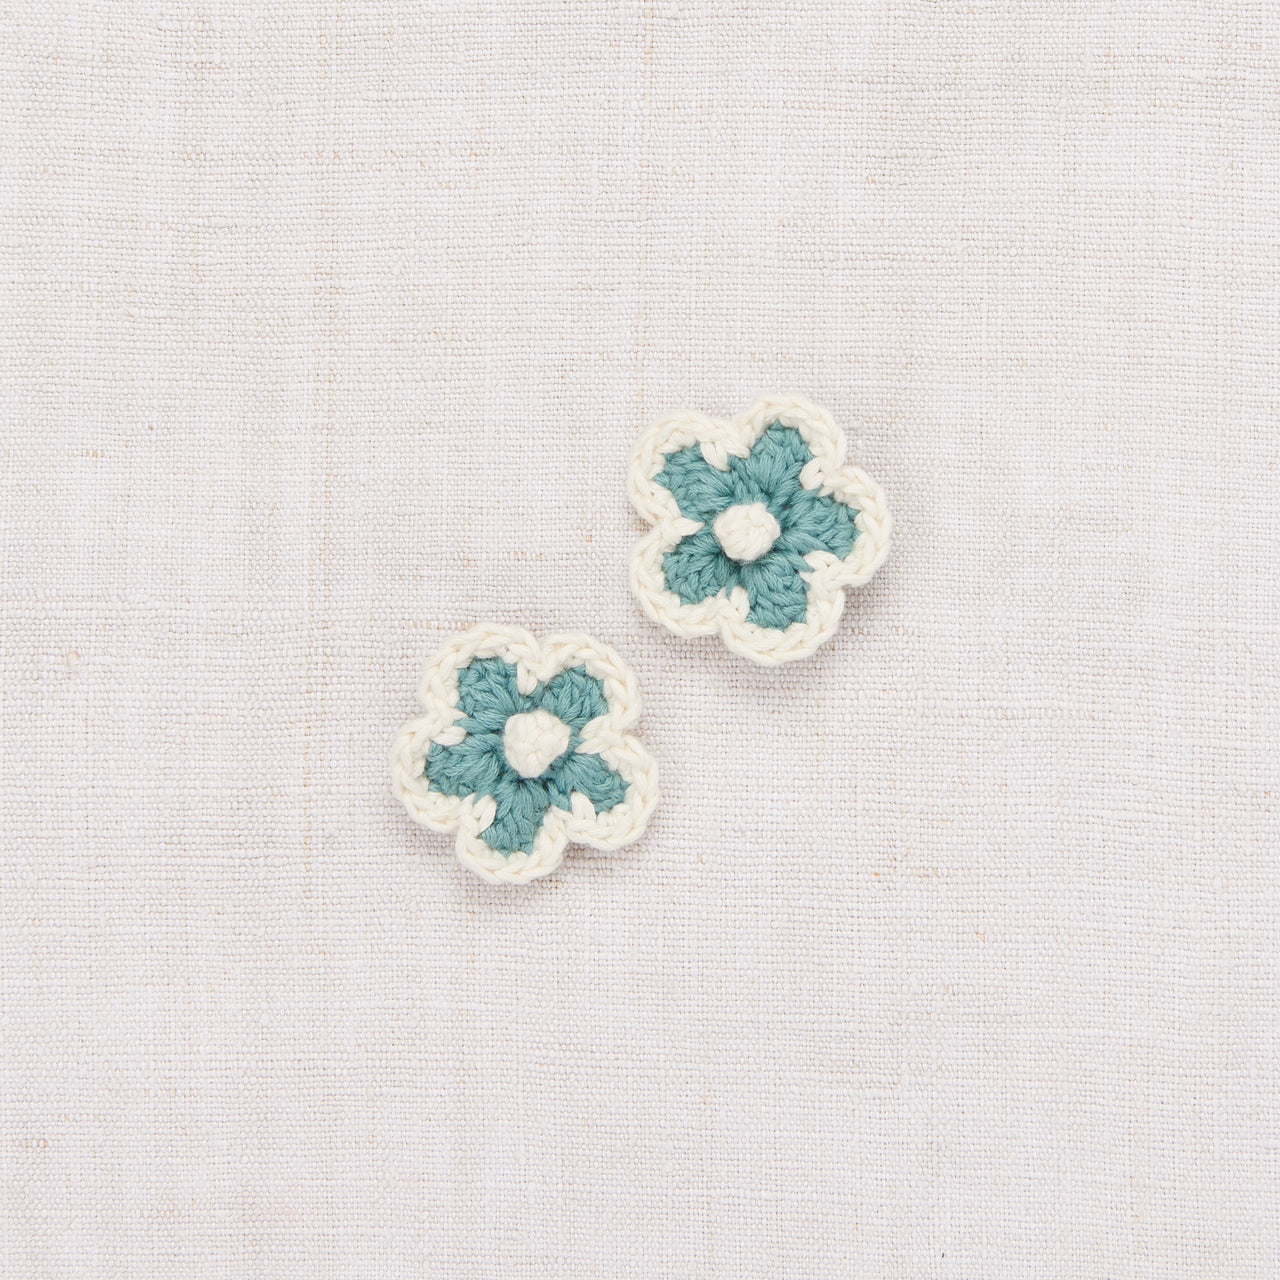 Medium Crochet Flower Clip Set - Dusty Blue/Vanilla